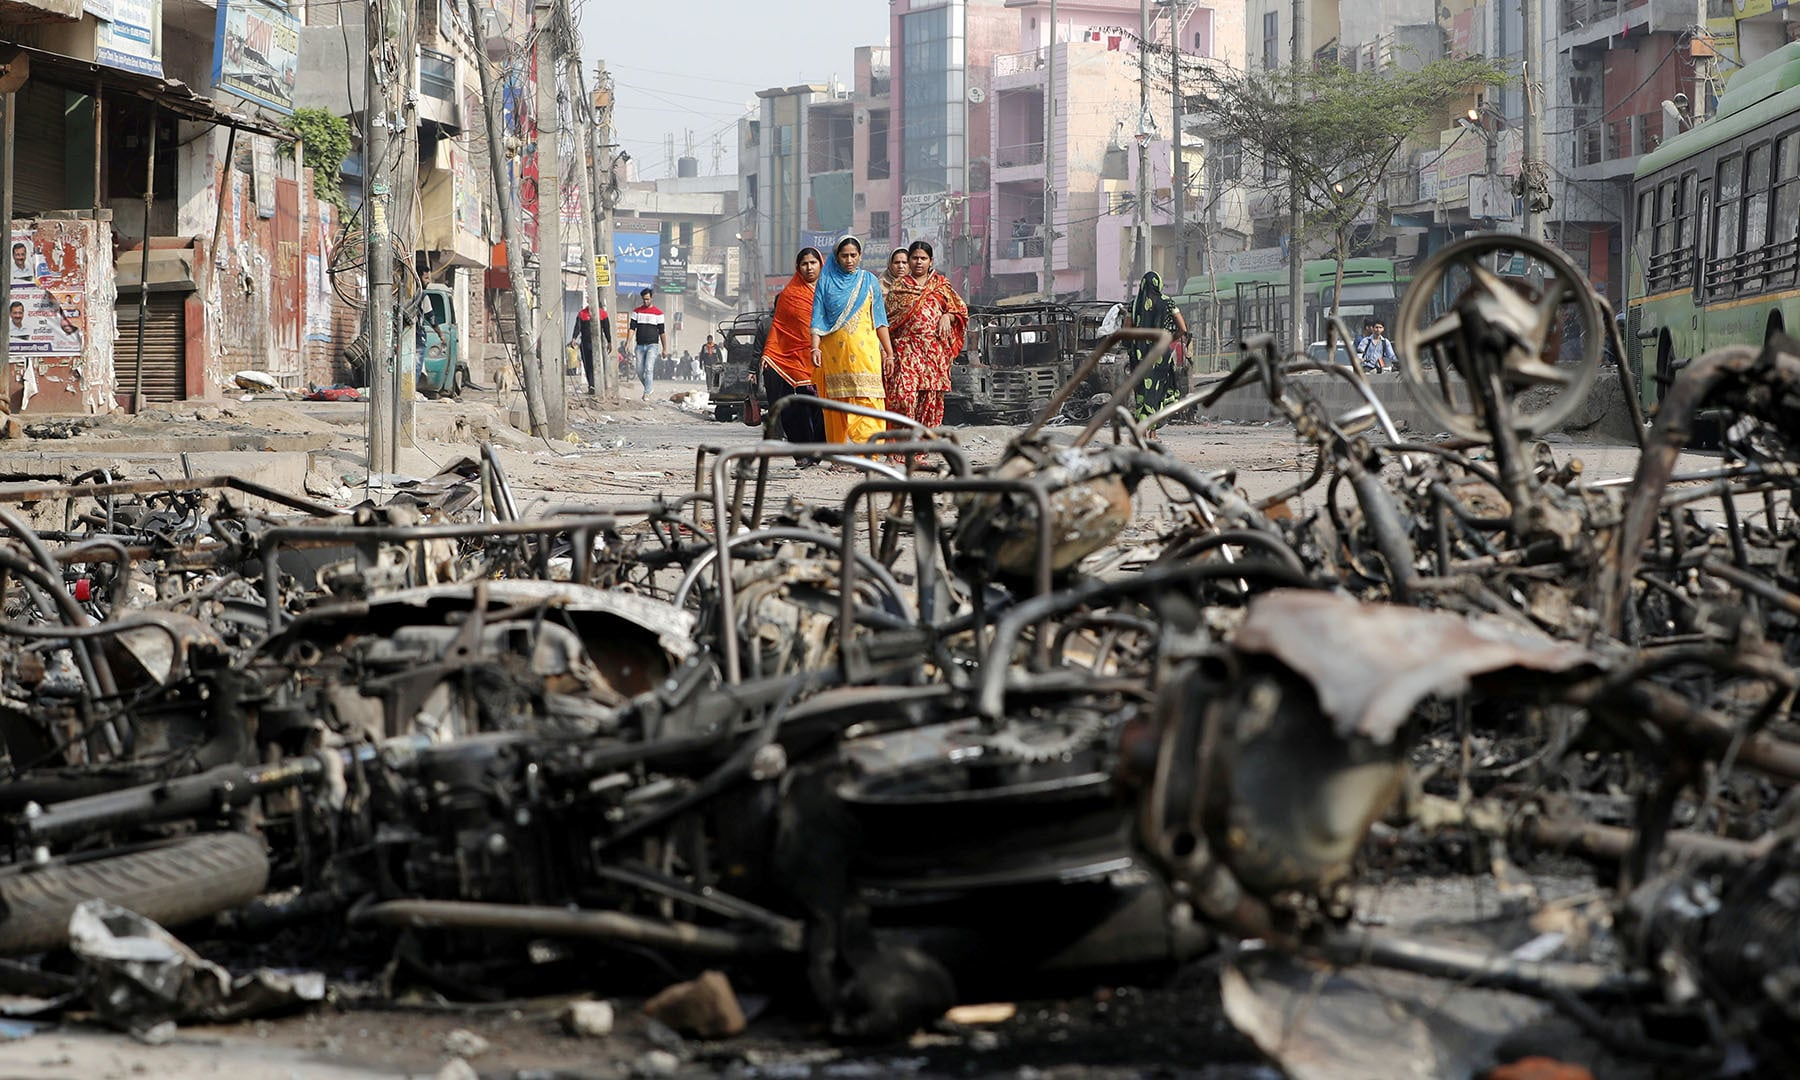 Women walk past charred vehicles in a riot affected area following clashes between people demonstrating for and against a new citizenship law in New Delhi, India on February 27. — Reuters